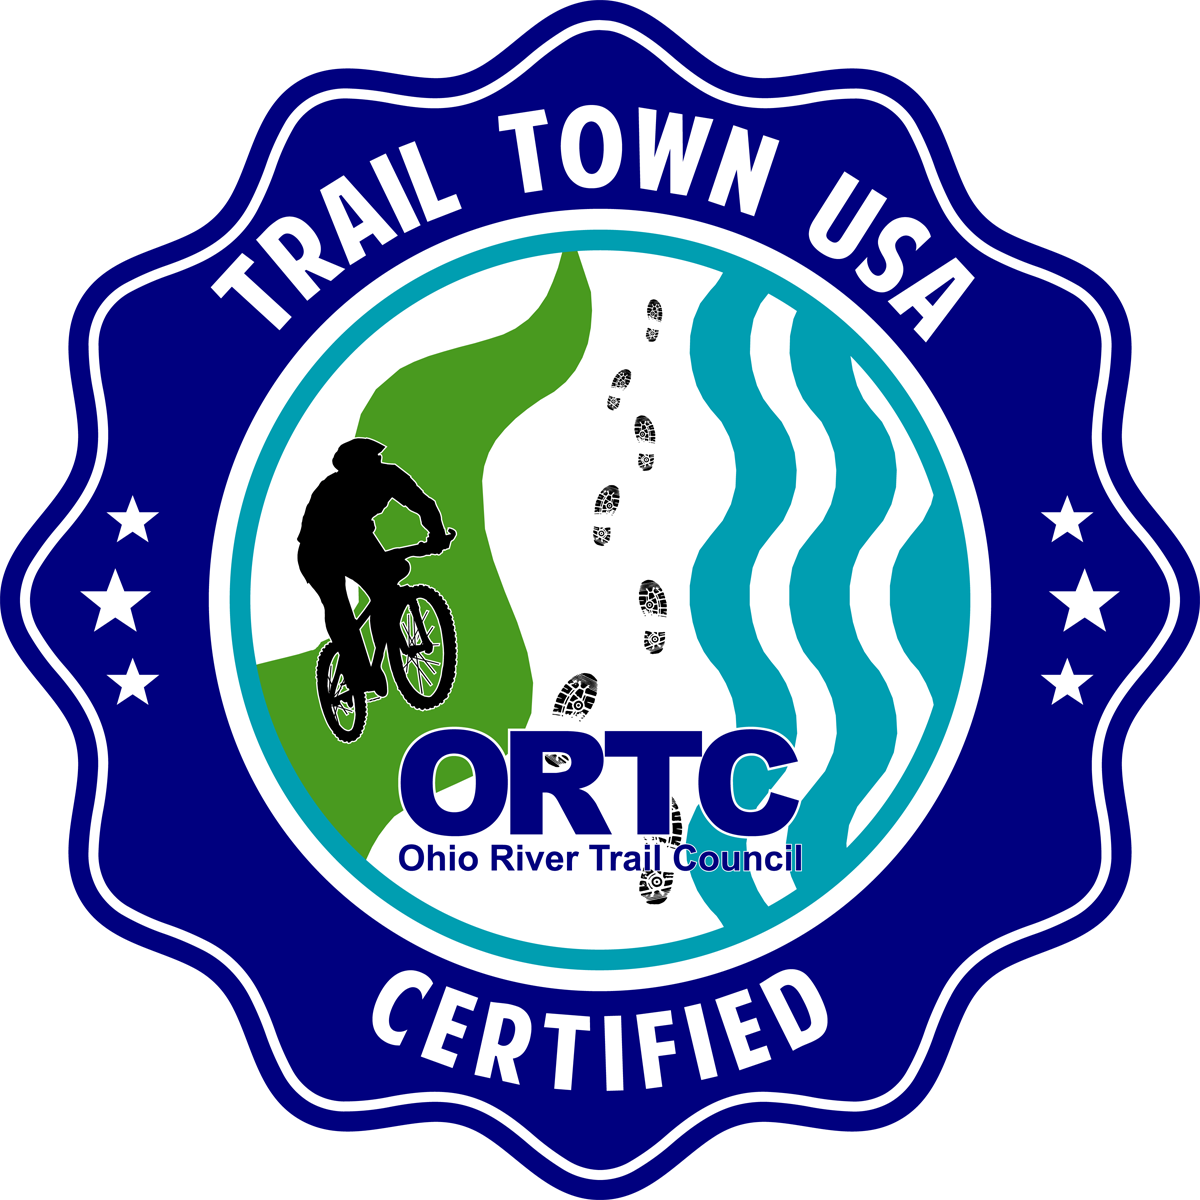 Trail Town USA Certification